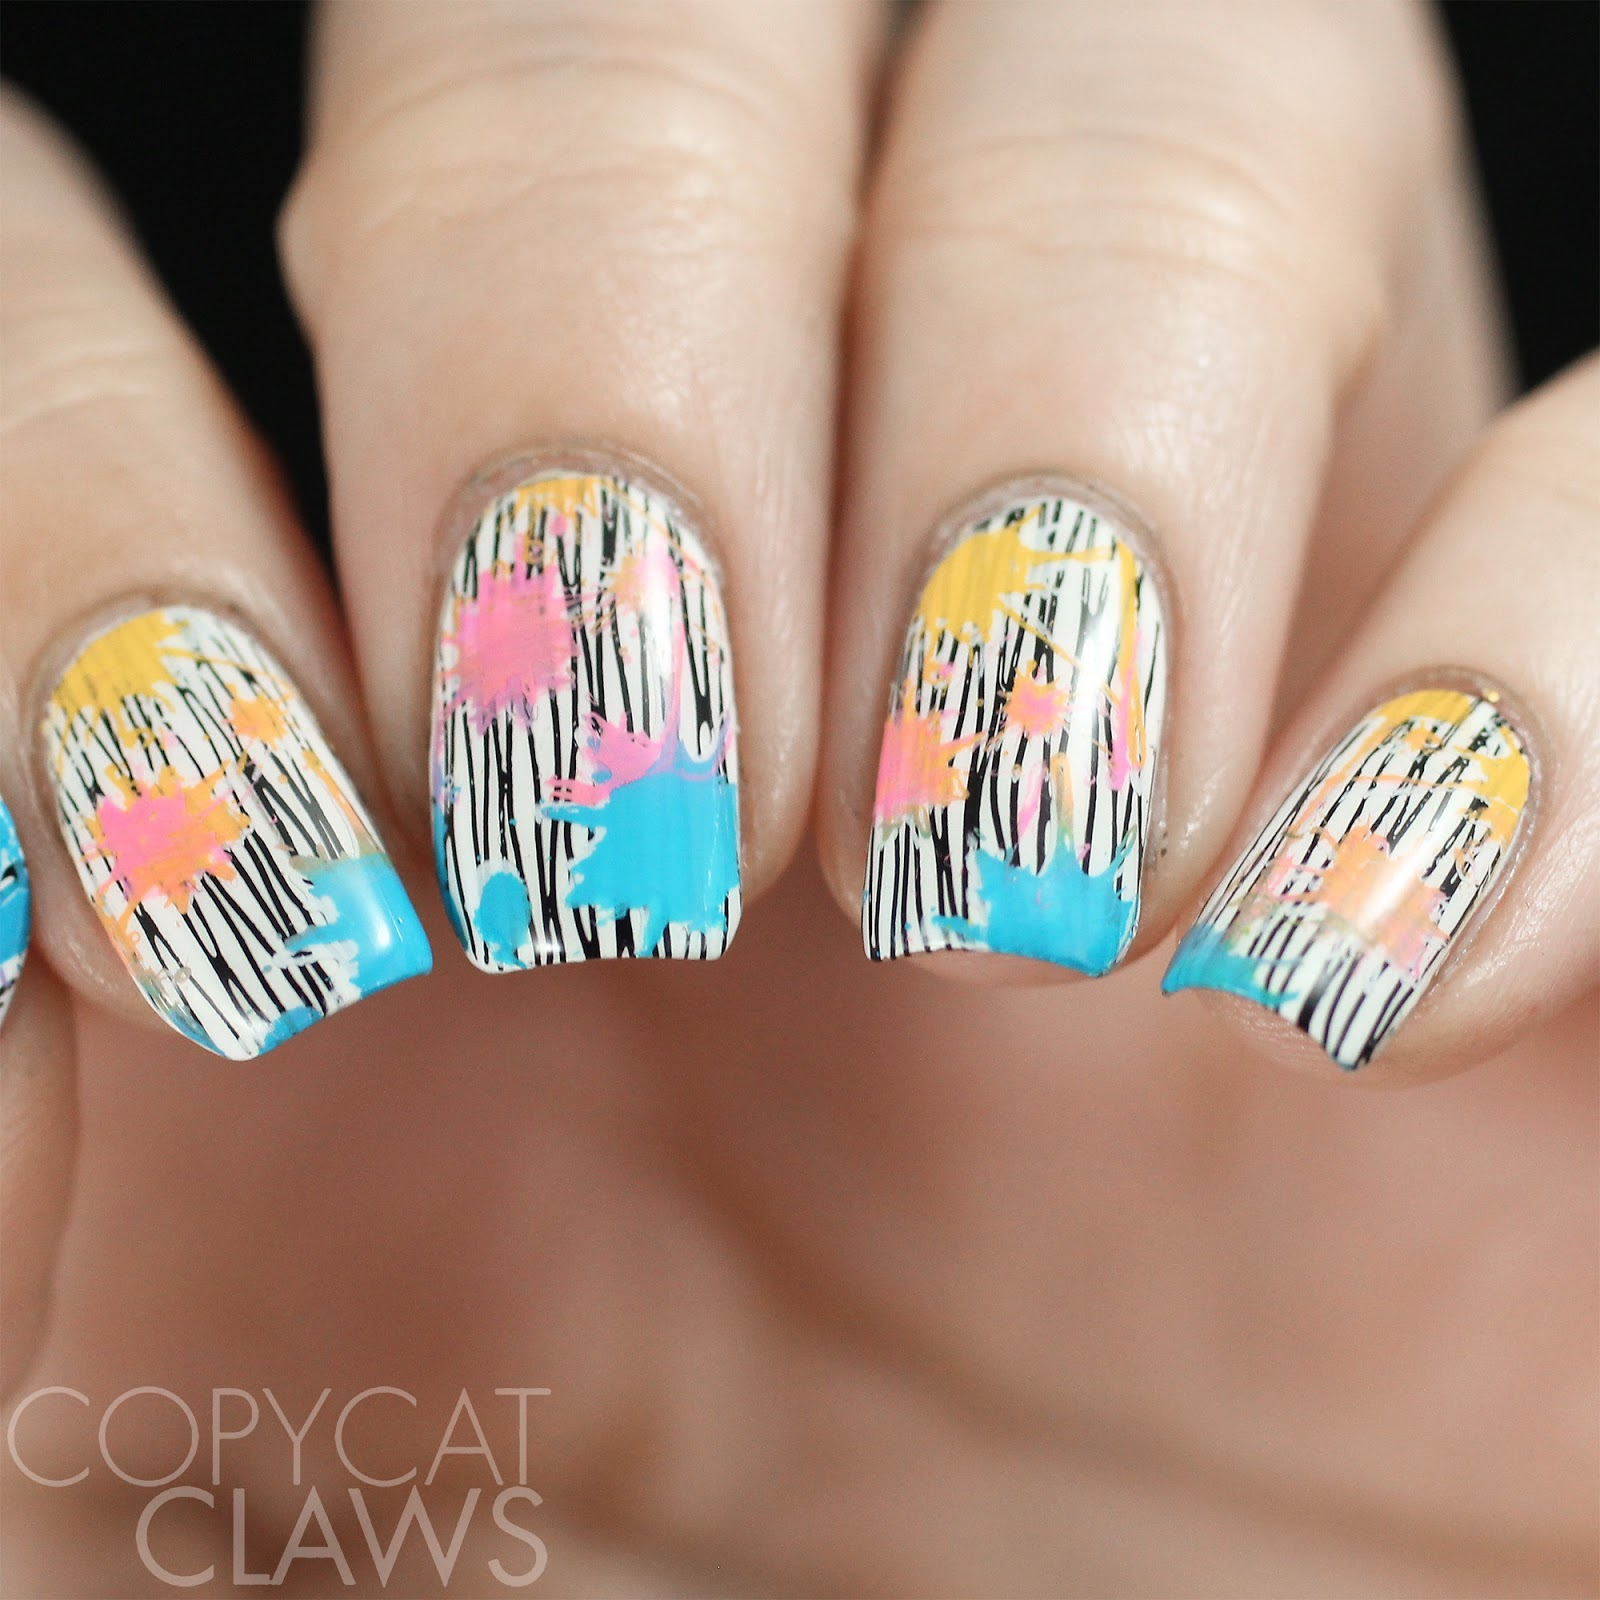 Copycat claws 26 great nail art ideas color explosions lina nail art supplies make your mark 03 color explosion stamping prinsesfo Choice Image